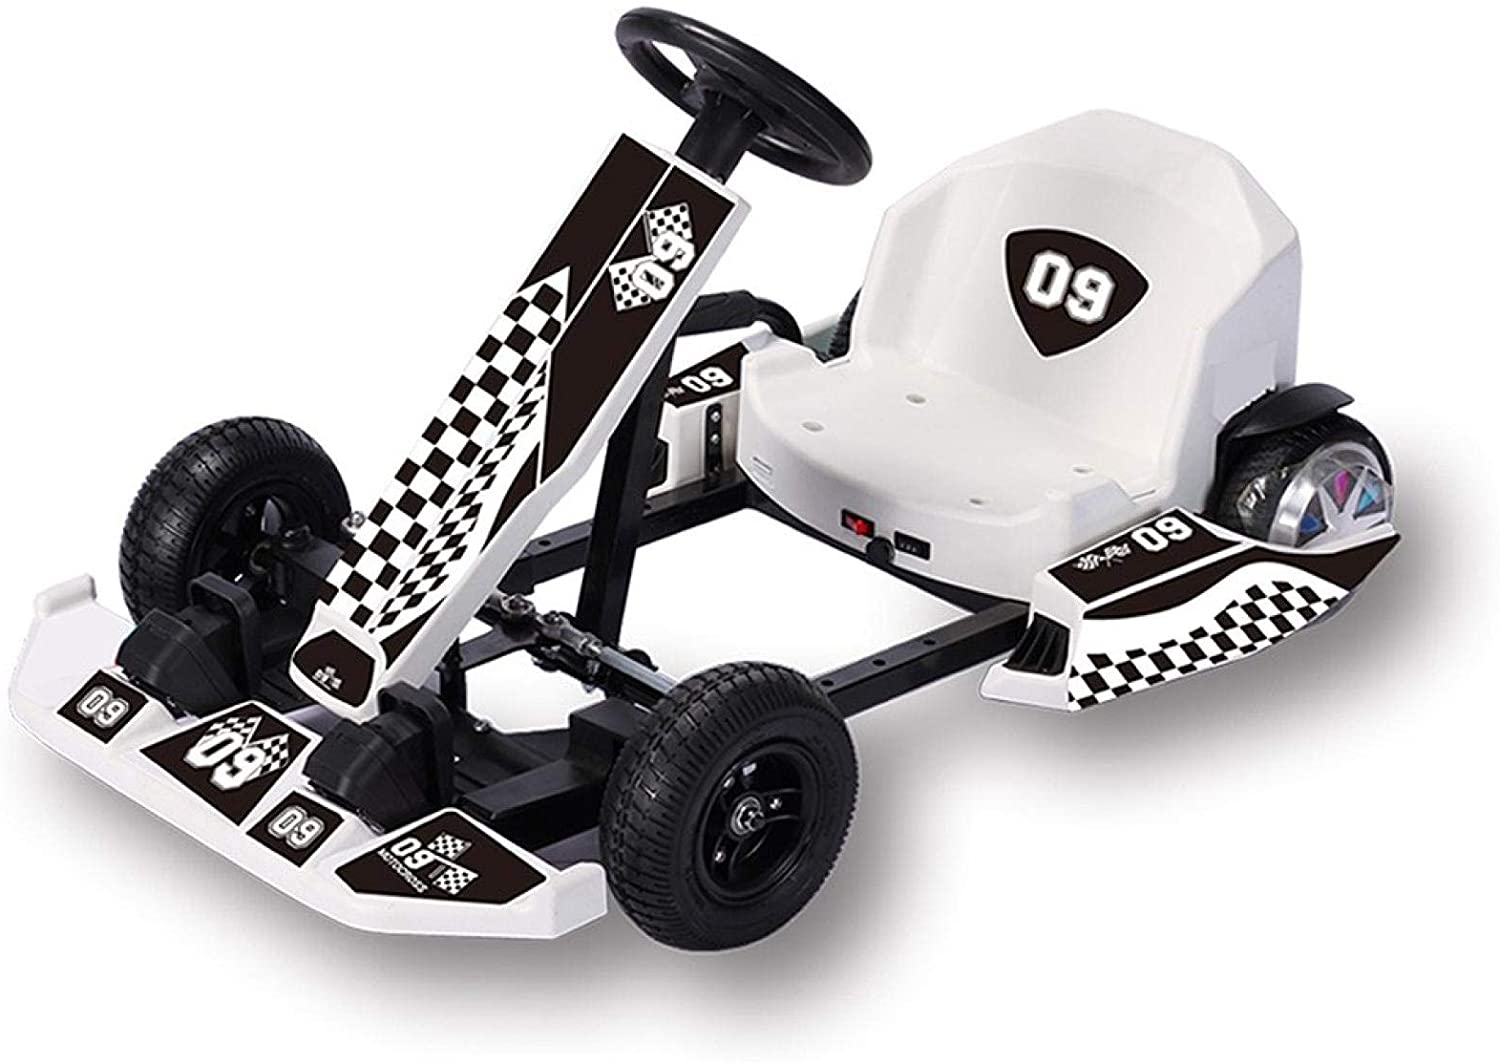 Boddenly Electric Go Kart,36V Battery Powered 4 Wheel Racer for Kids,Kids' Pedal Cars for Outdoor, Adjustable Go Kart,Suitable for Different Driving Ages,Max Load 143Lbs